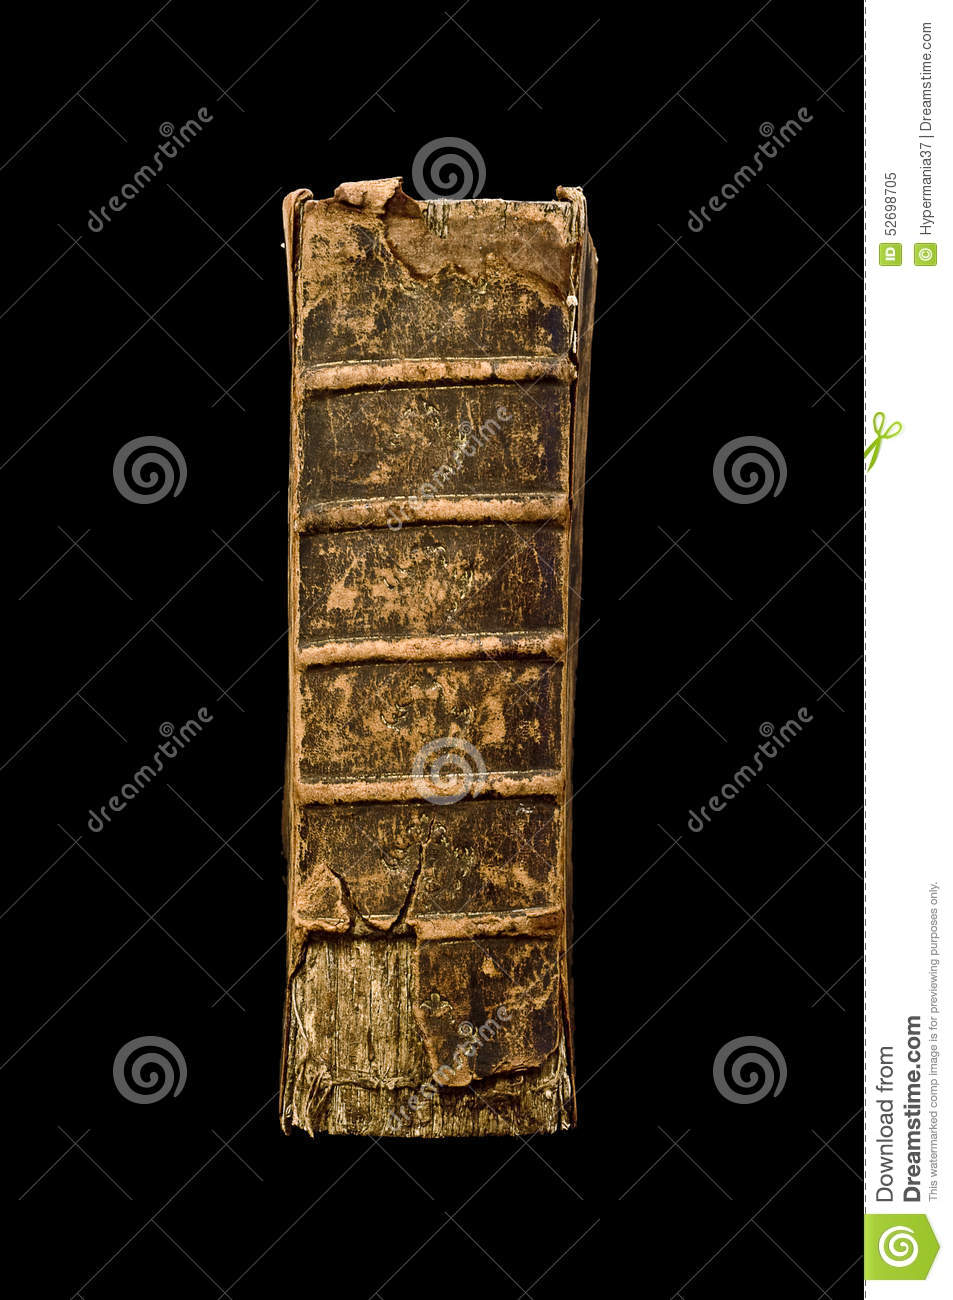 how to fix spine book